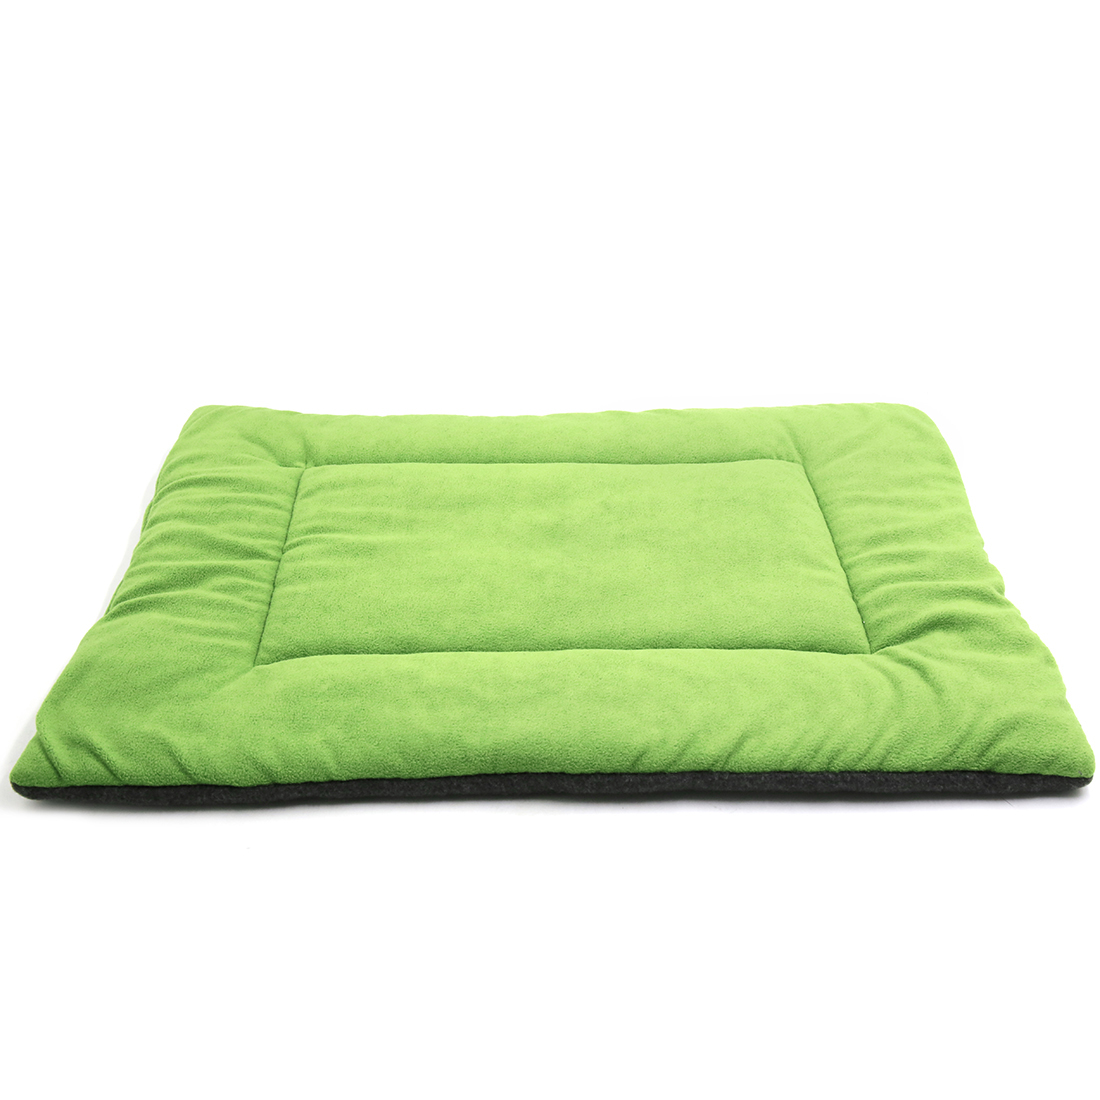 Fleece Reversible Mat Cushion Pad Bed for Dog Cat Puppy Pet Green L